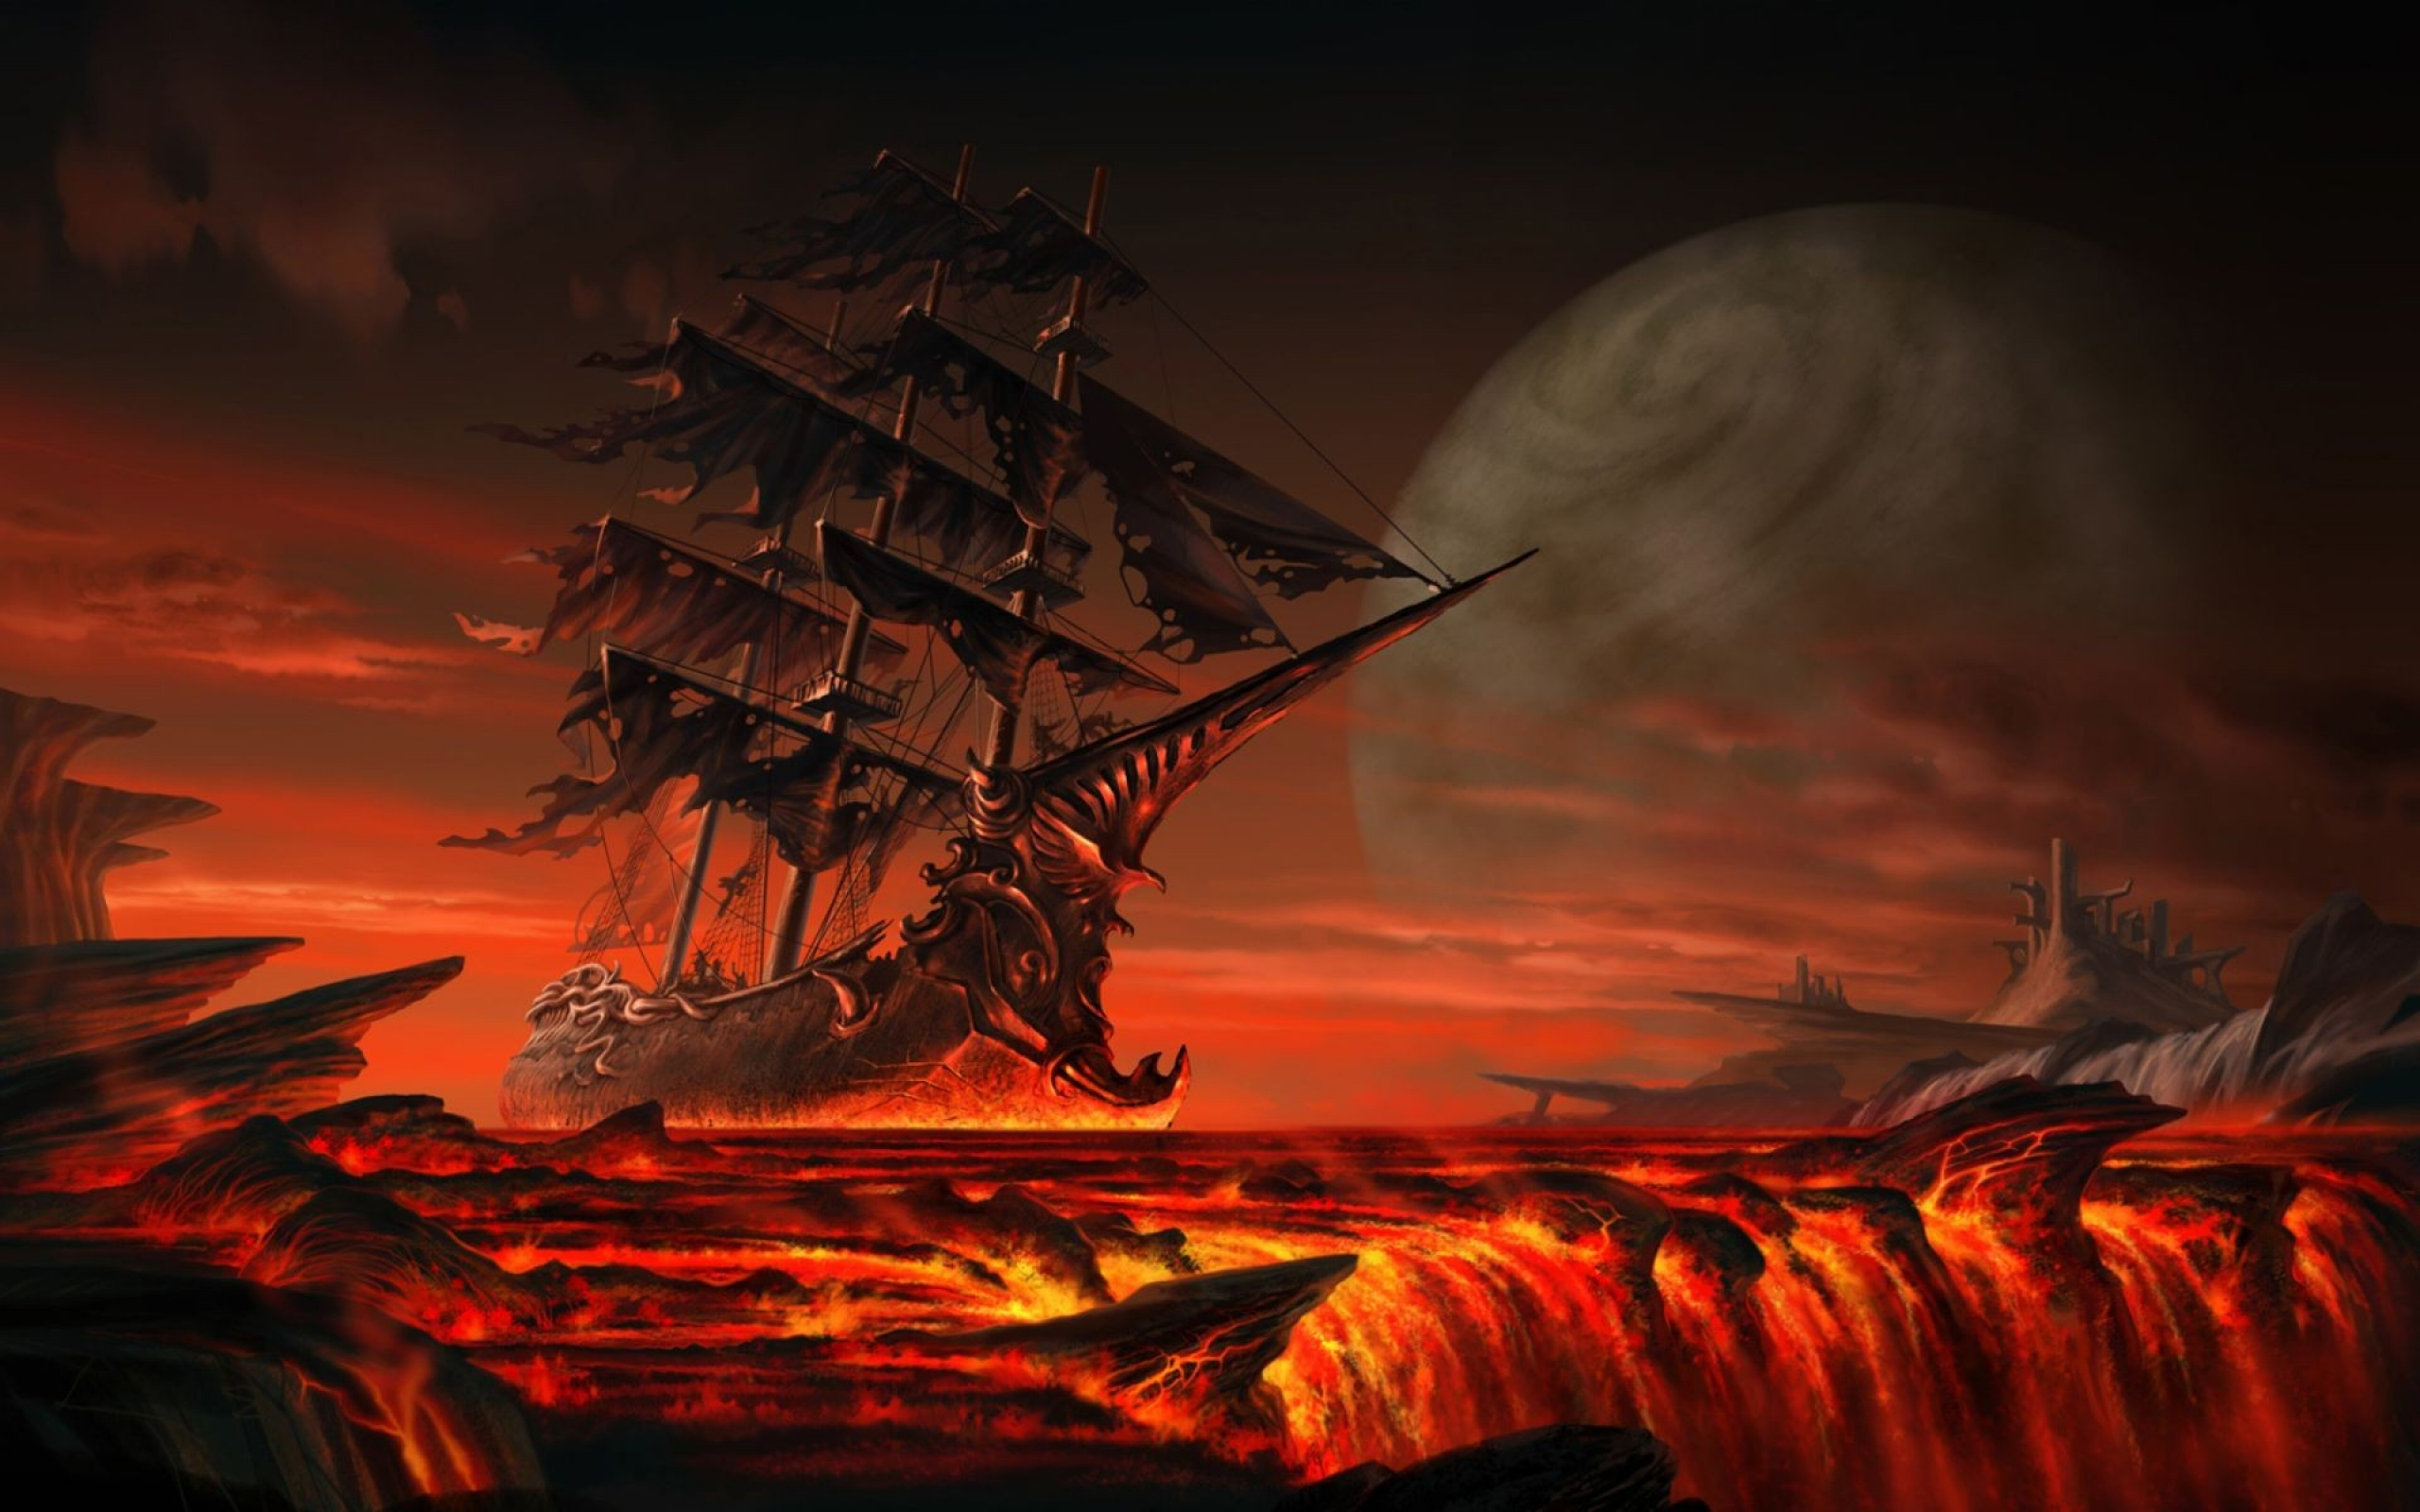 3d-abstract_widewallpaper_ghost-ship-from-hell_38722